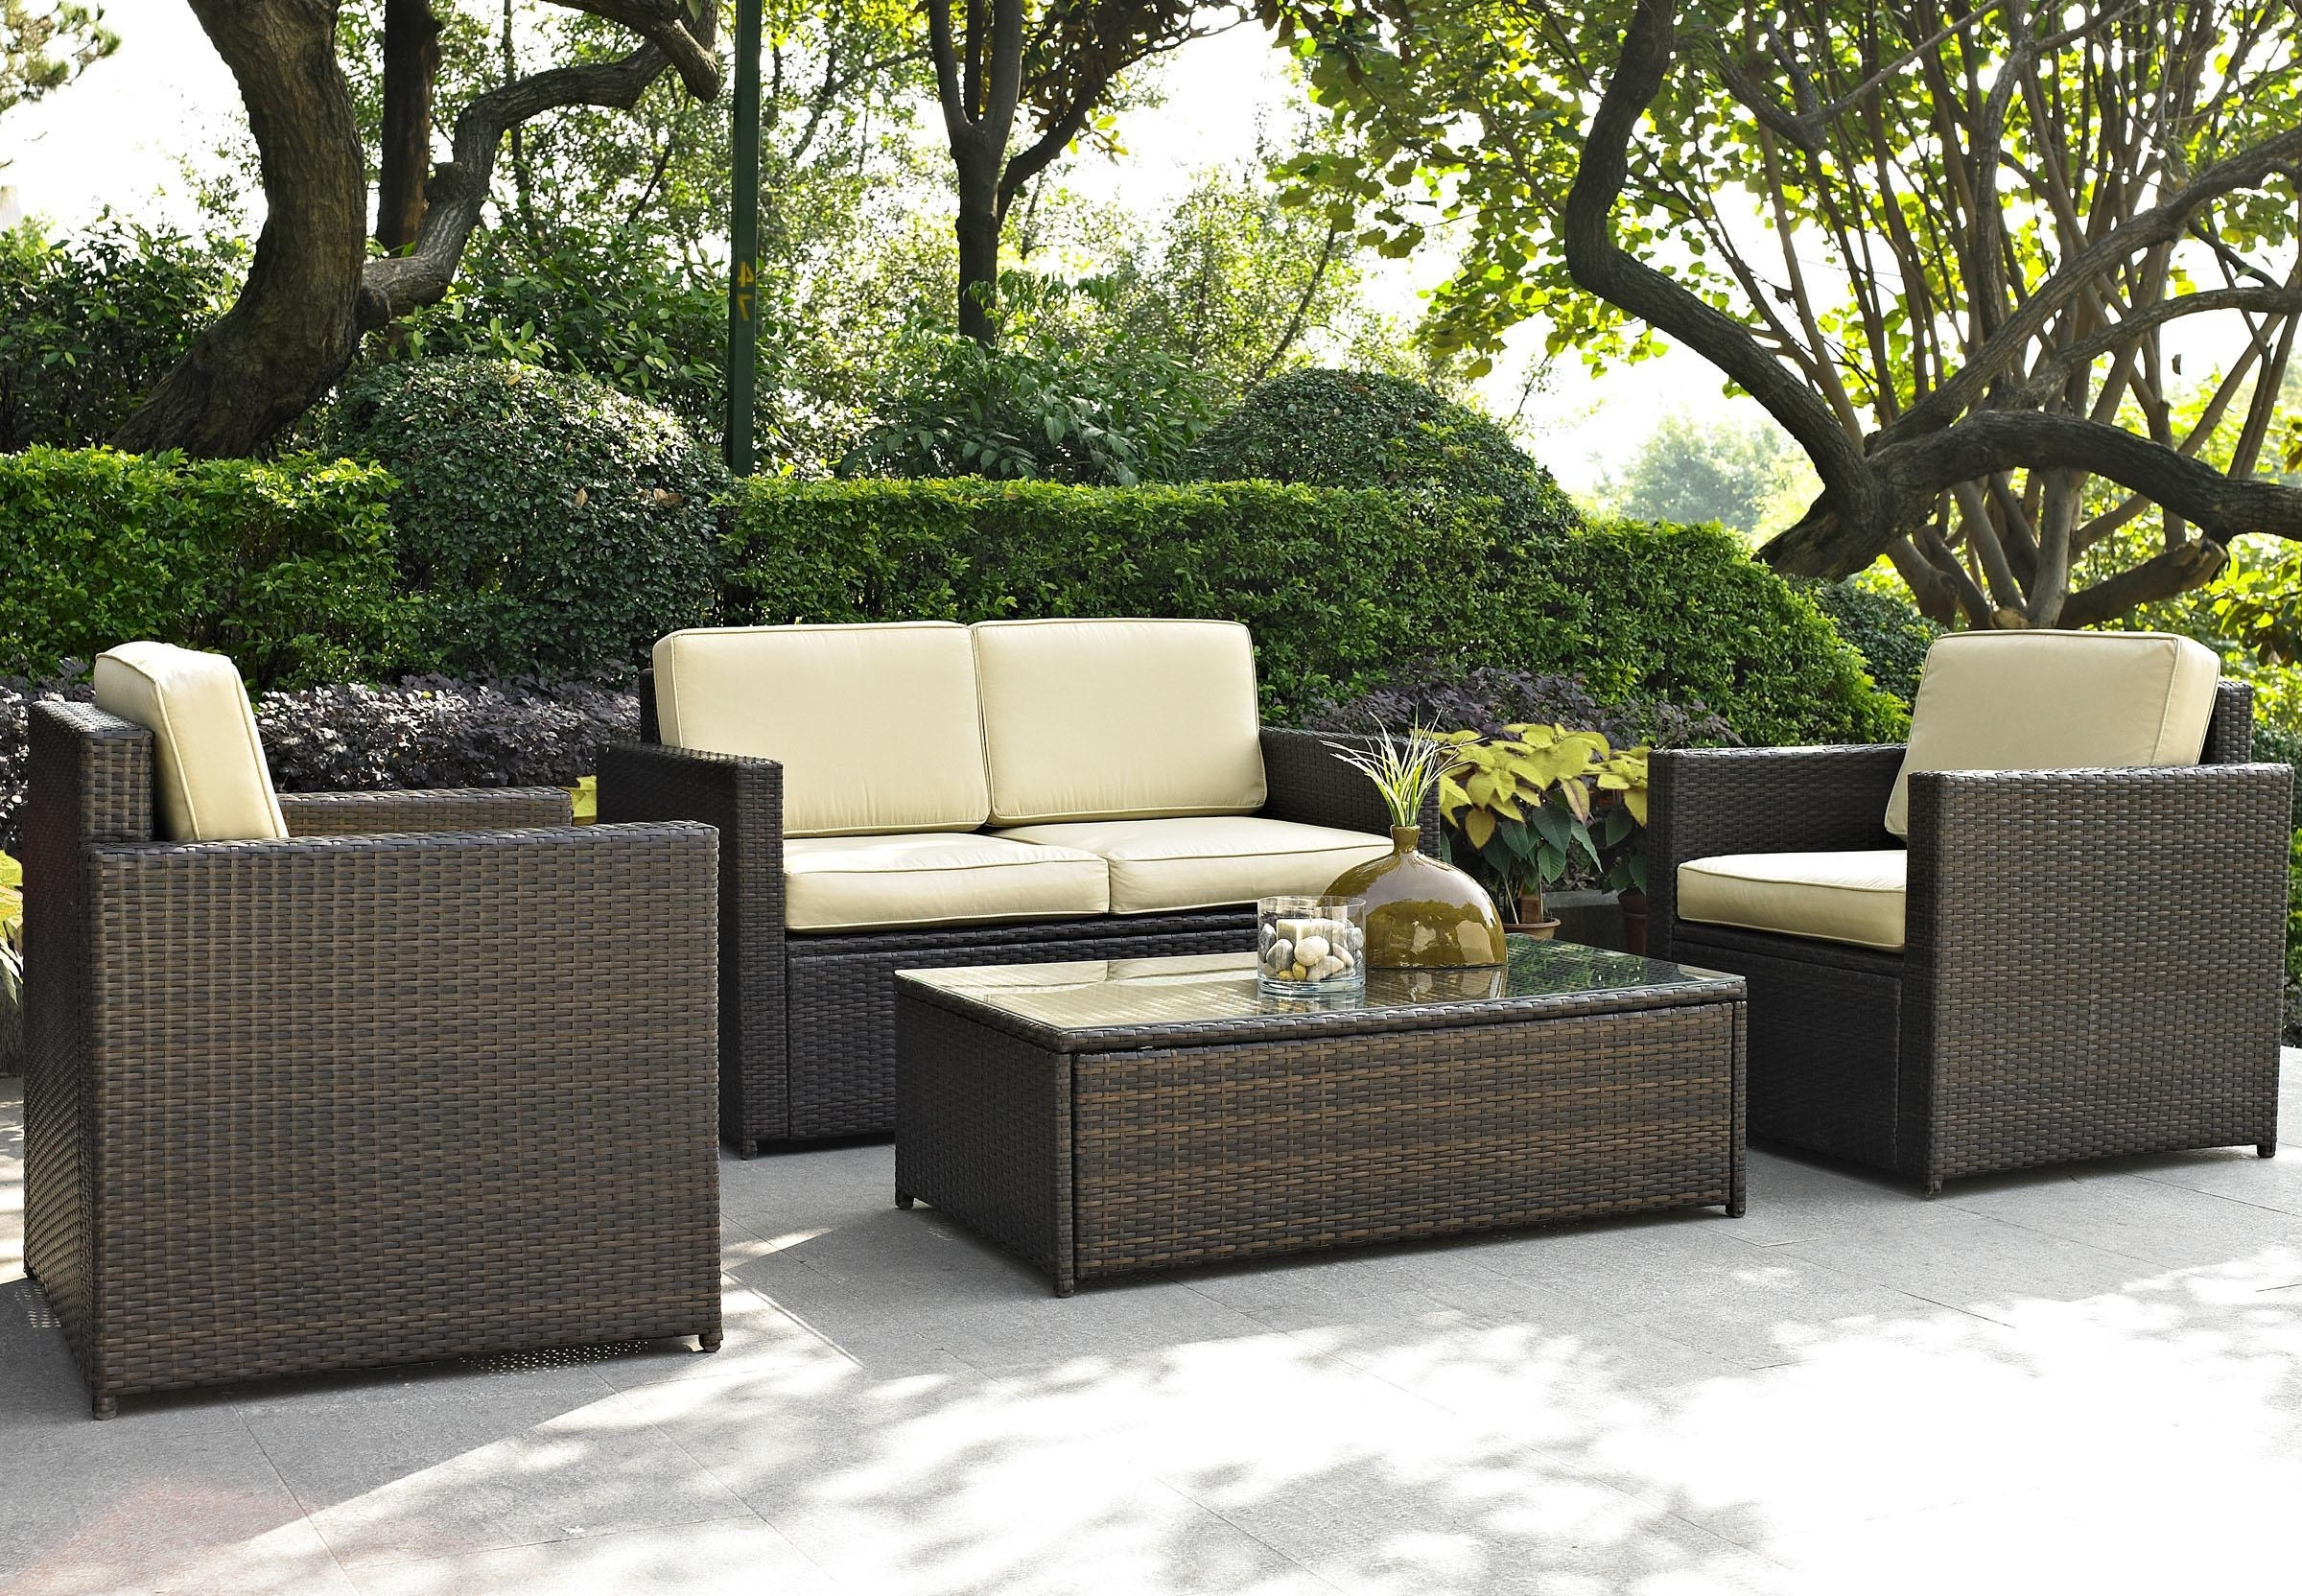 Current Resin Wicker Patio Conversation Sets Pertaining To Furniture: Lovely Brown Wicker Chair Outdoor Furniture Design (View 5 of 15)